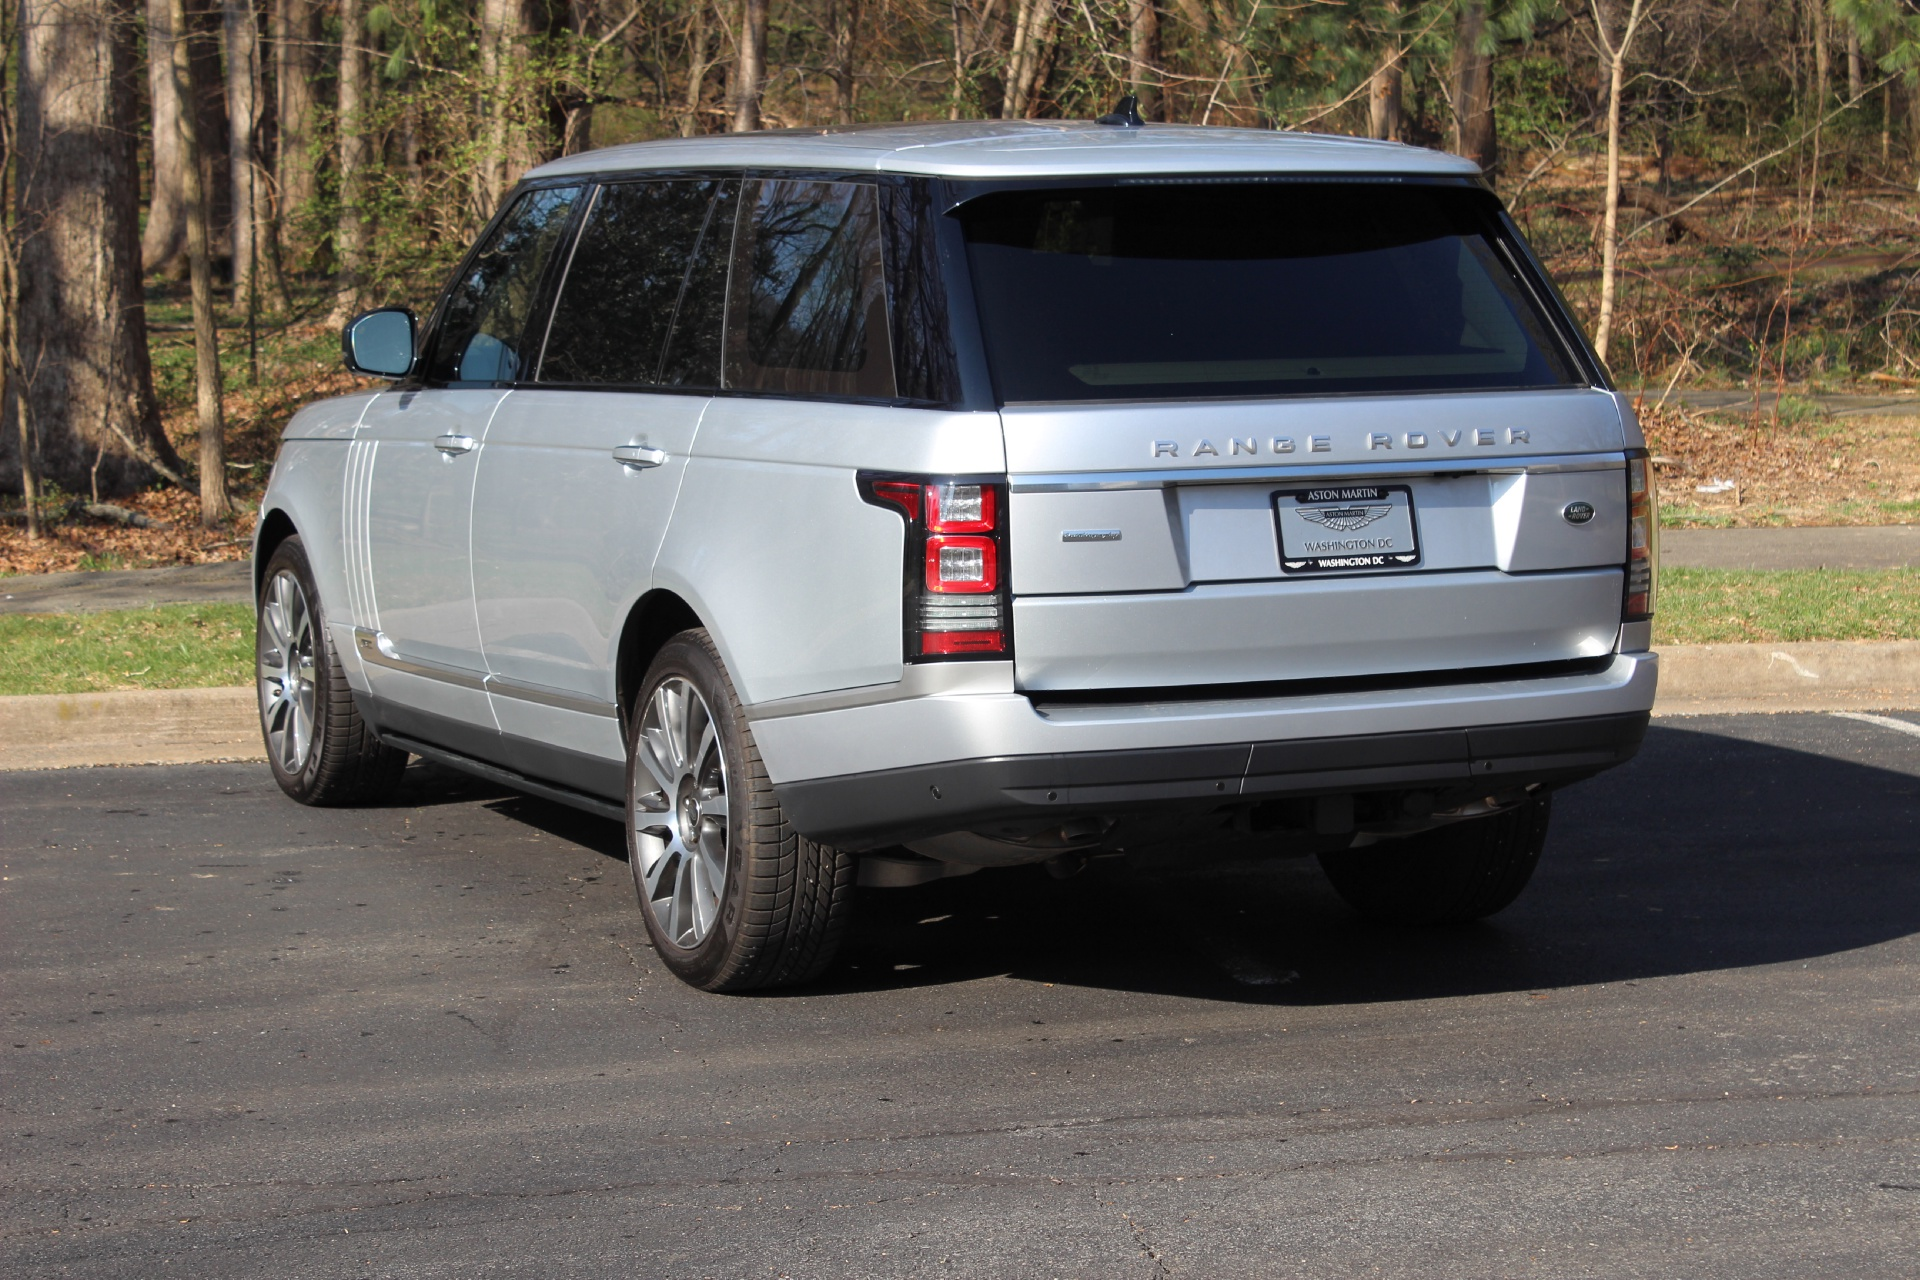 2015 Land Rover Range Rover Autobiography LWB Stock P for